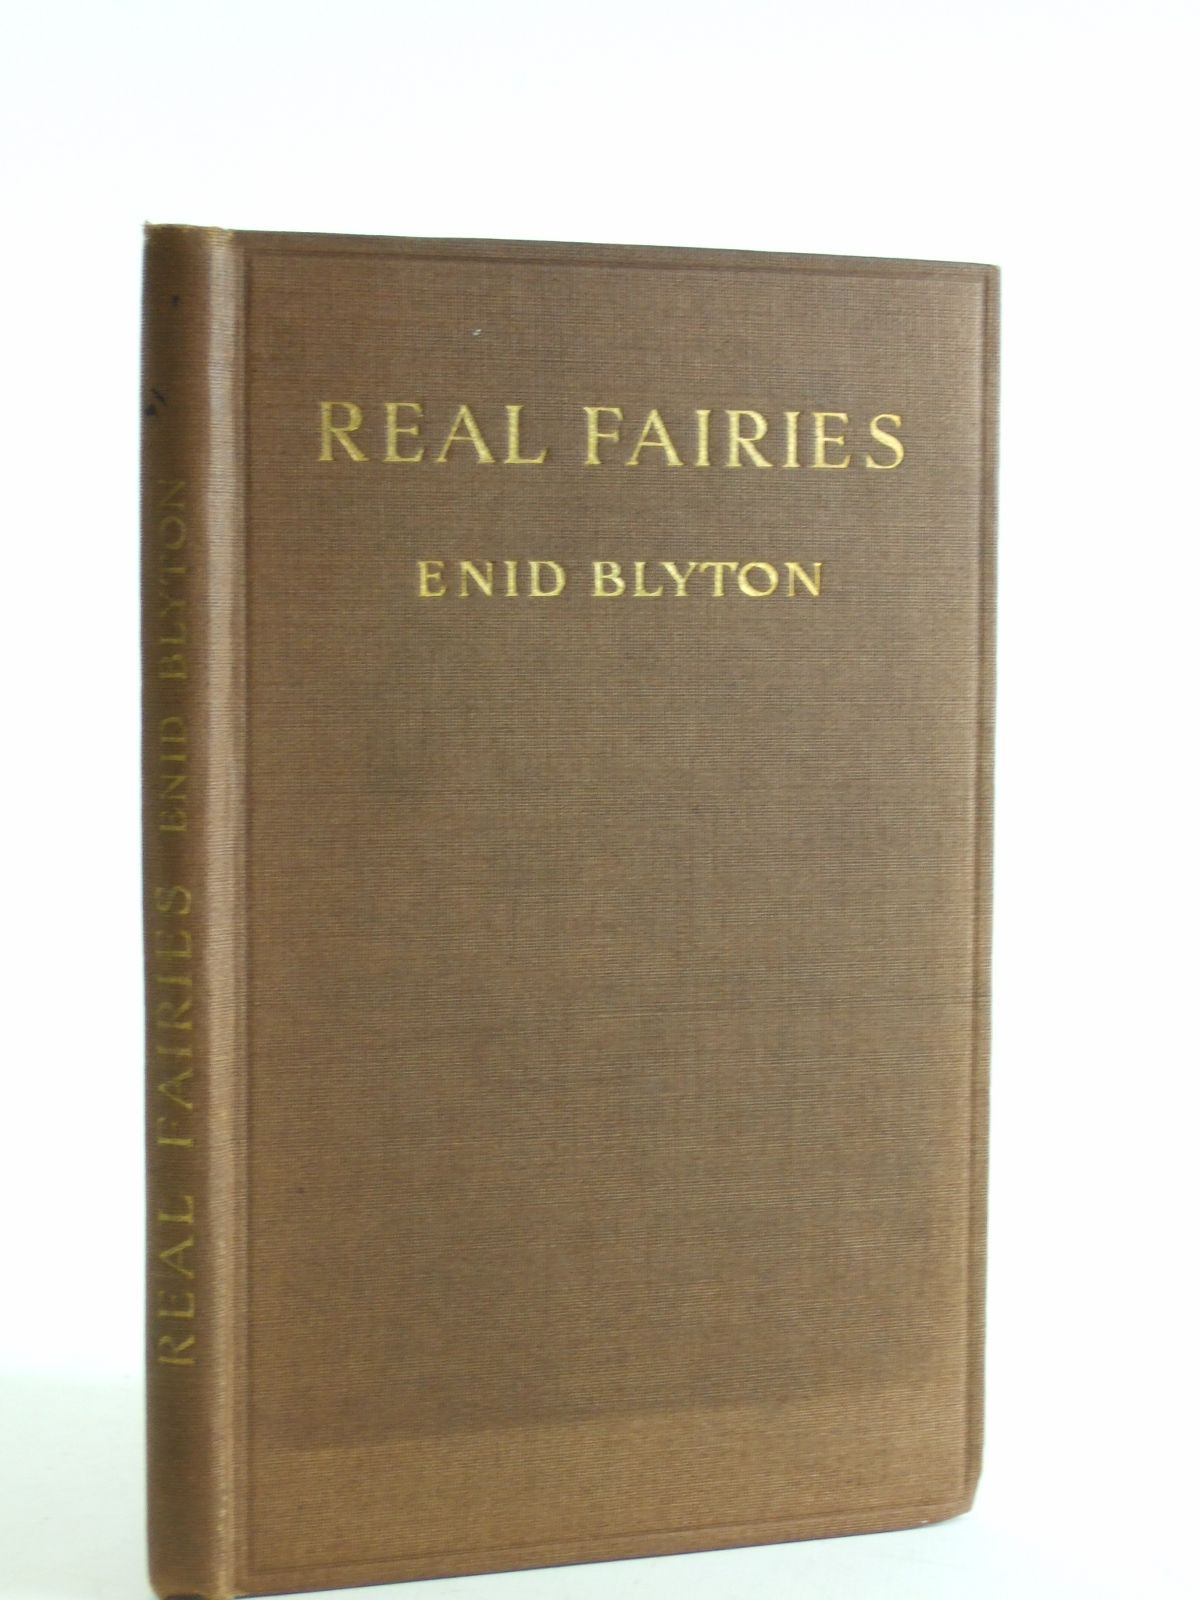 Photo of REAL FAIRIES written by Blyton, Enid published by J. Saville & Co. Ltd. (STOCK CODE: 1206927)  for sale by Stella & Rose's Books